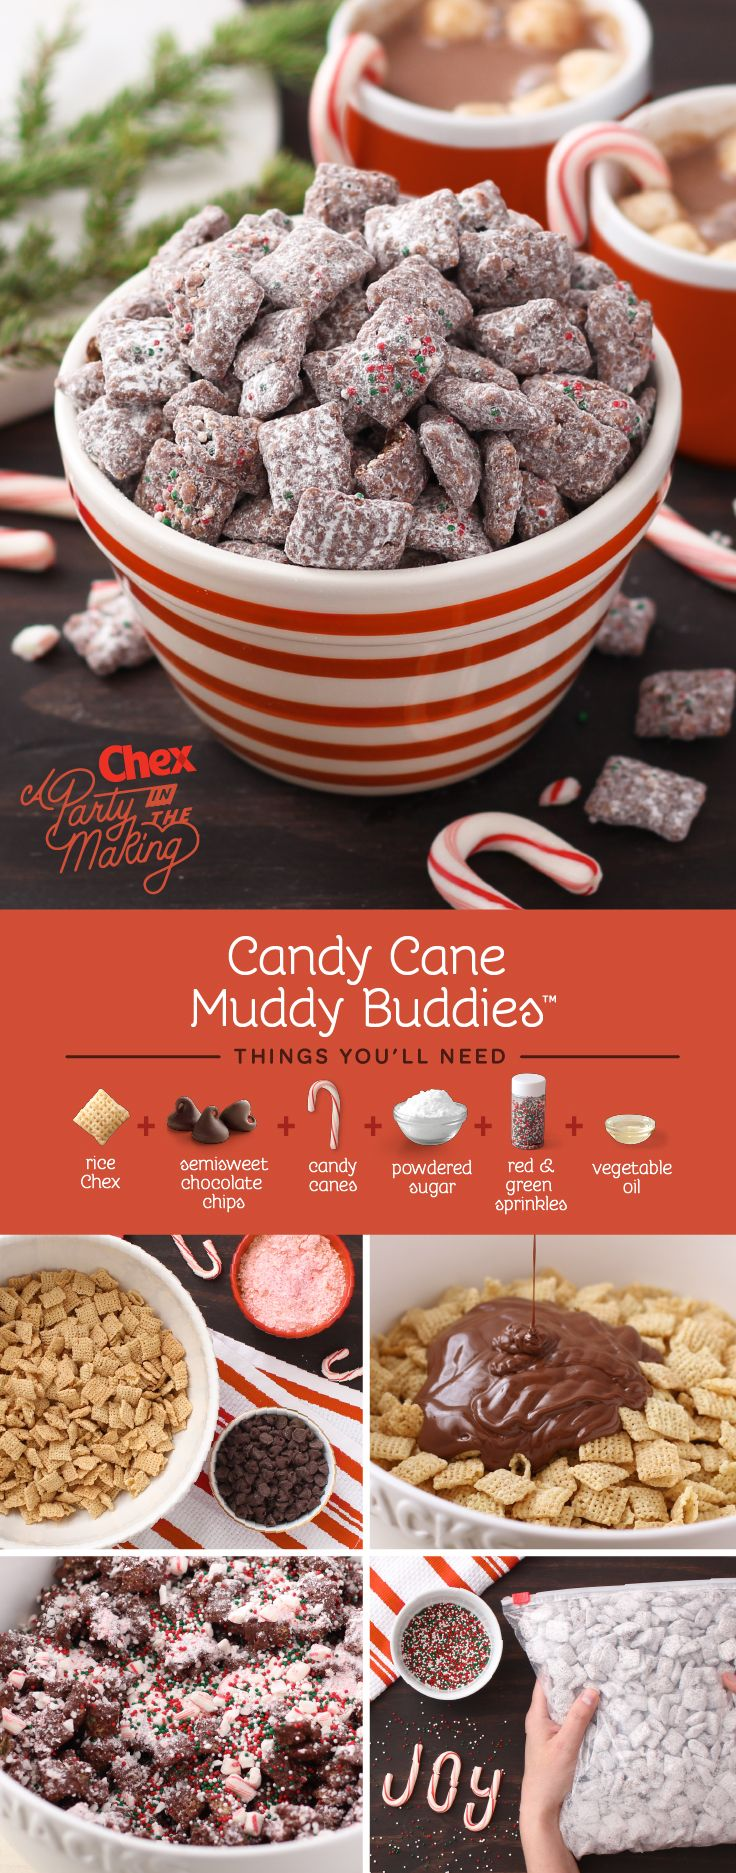 Crushed up candy canes and festive holiday sprinkles are the star of these Homemade Candy Cane Muddy Buddies. Make a batch of these and package it up individually for an easy holiday party favor.